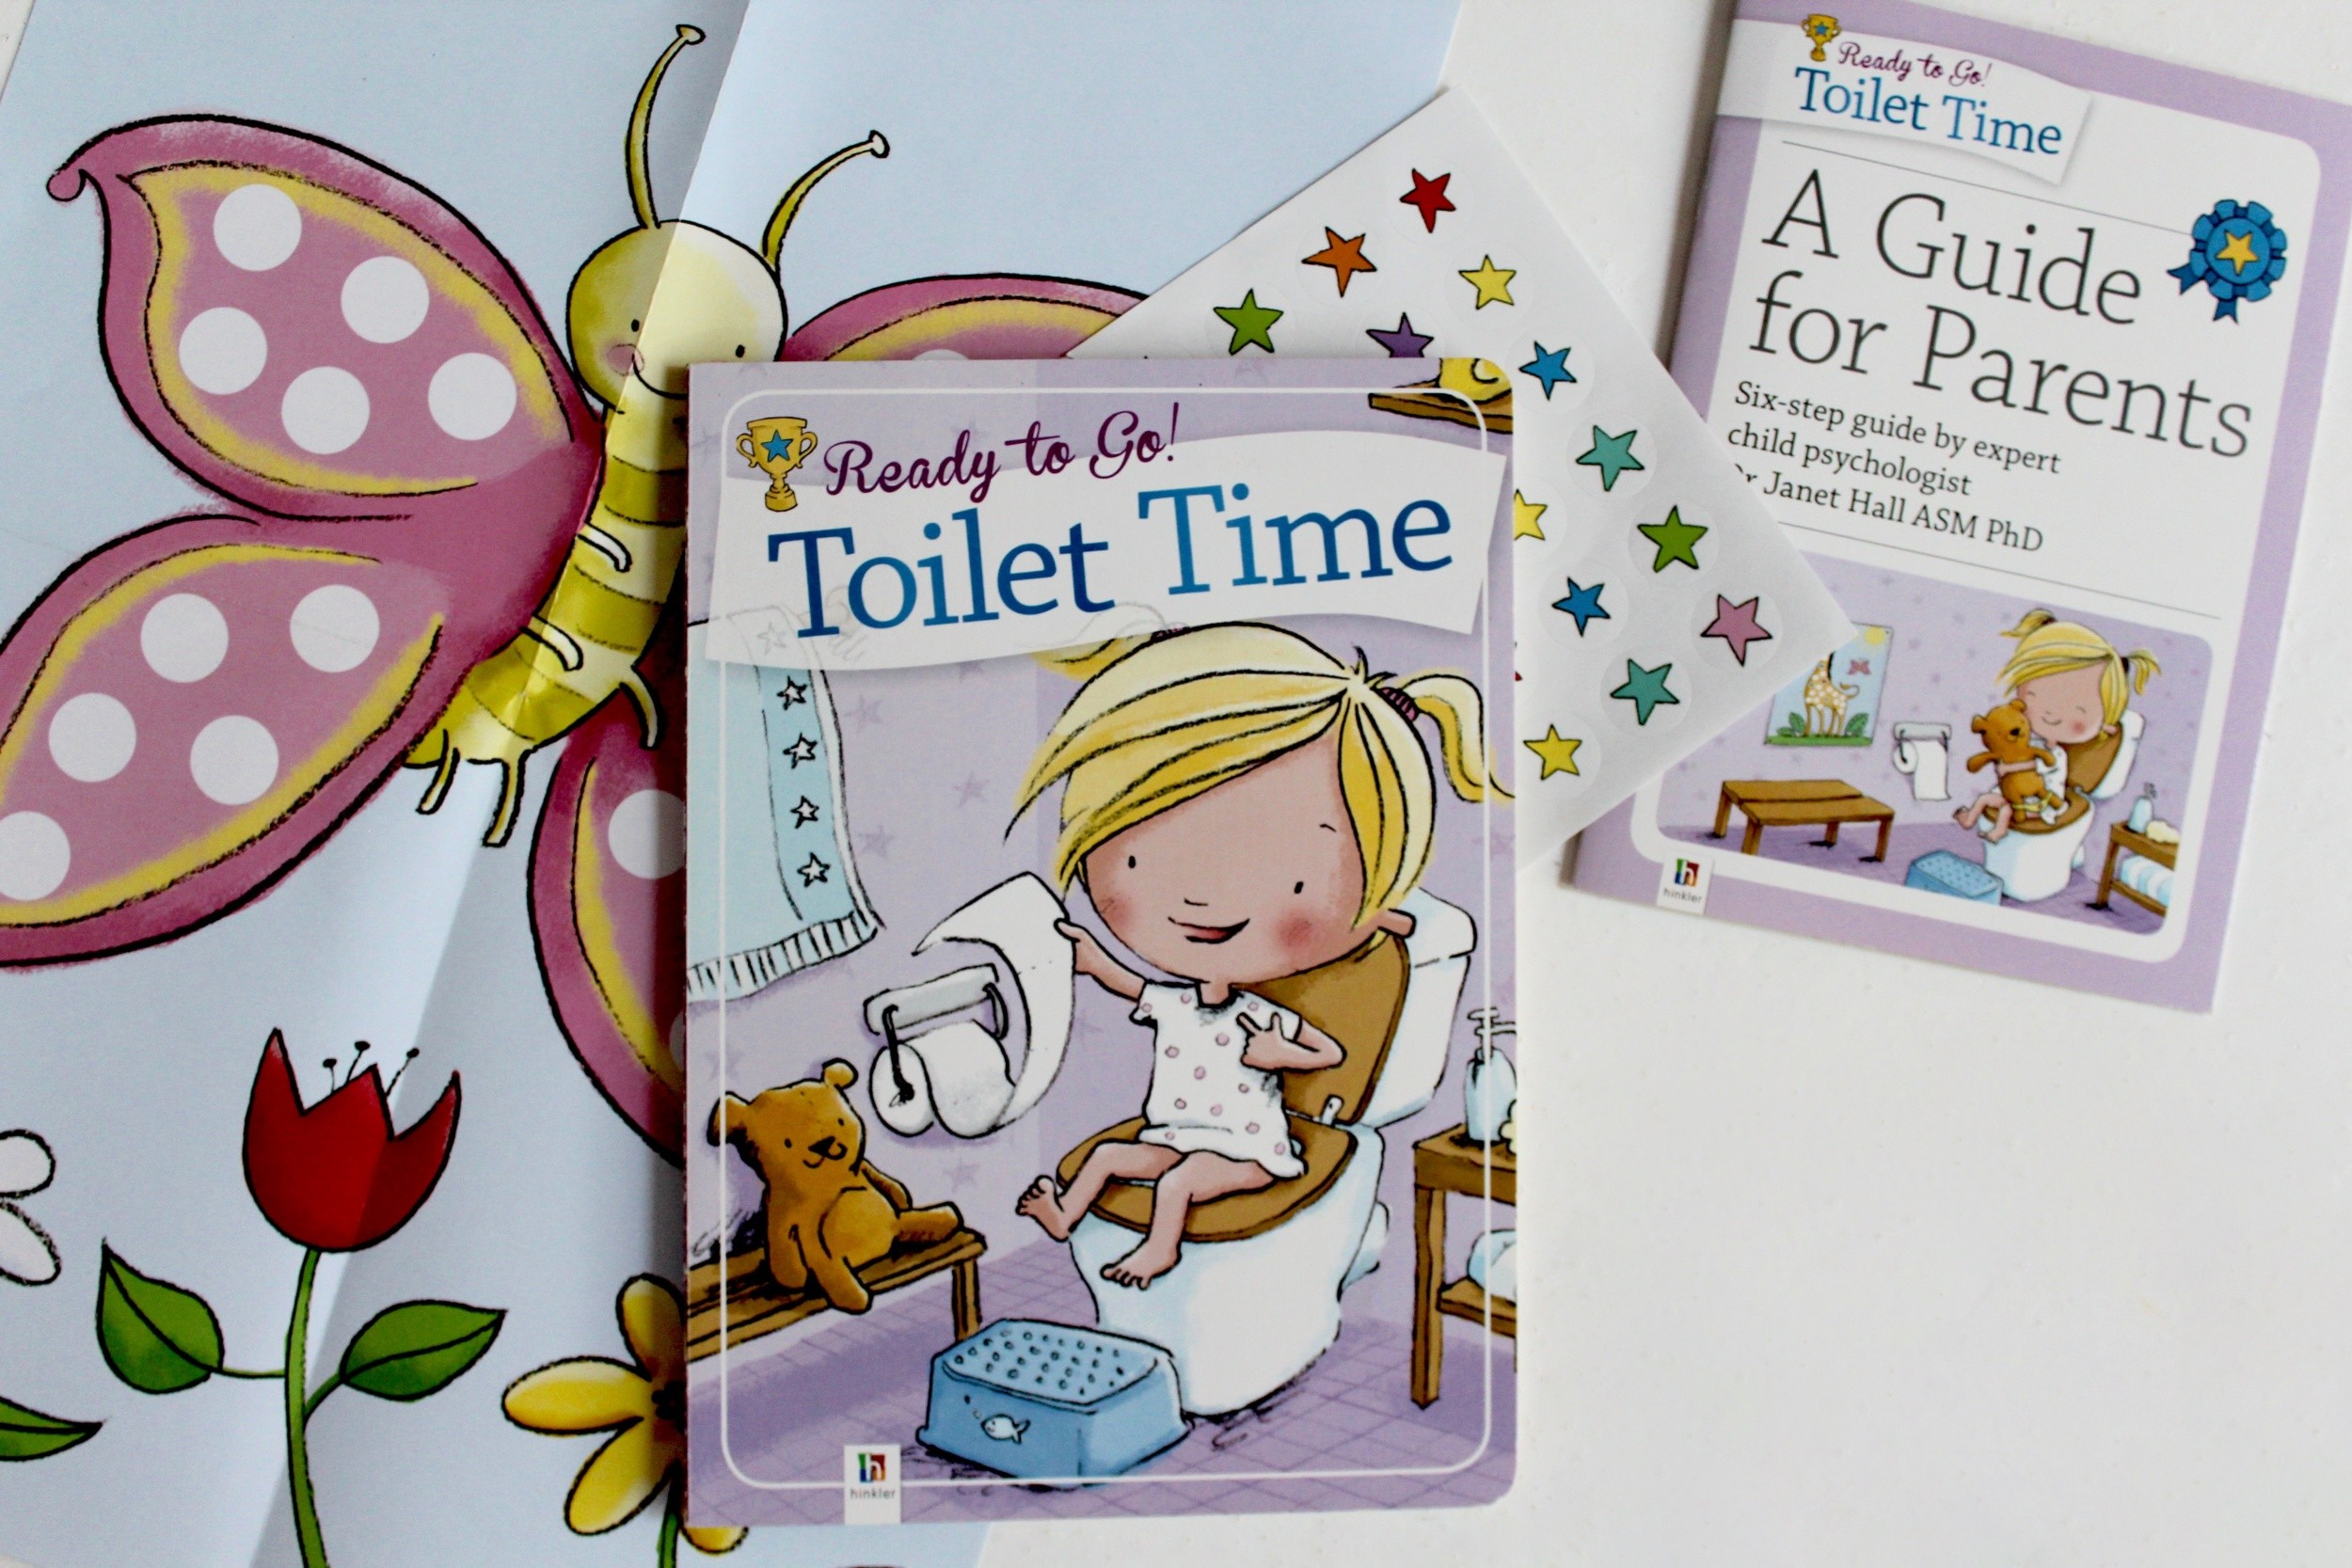 Potty Training, Potty Training with ease: Tips from a mother of 3